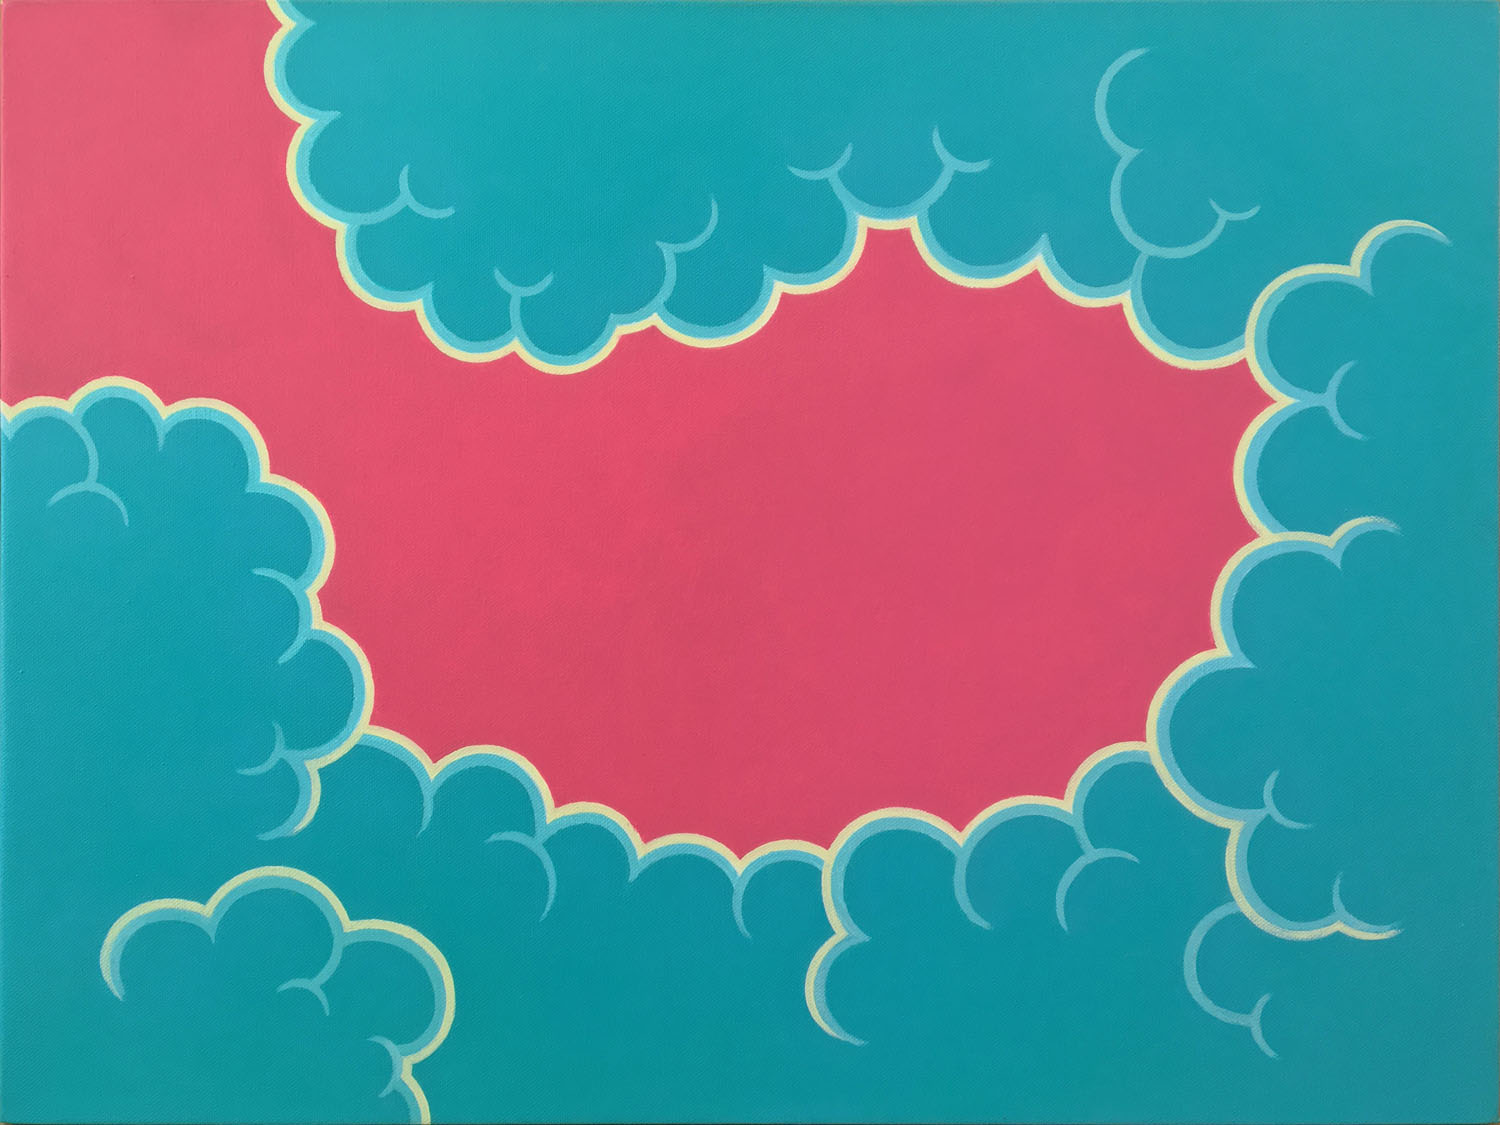 Art & Market – 'Clouds' by Wah Nu at Richard Koh Fine Art